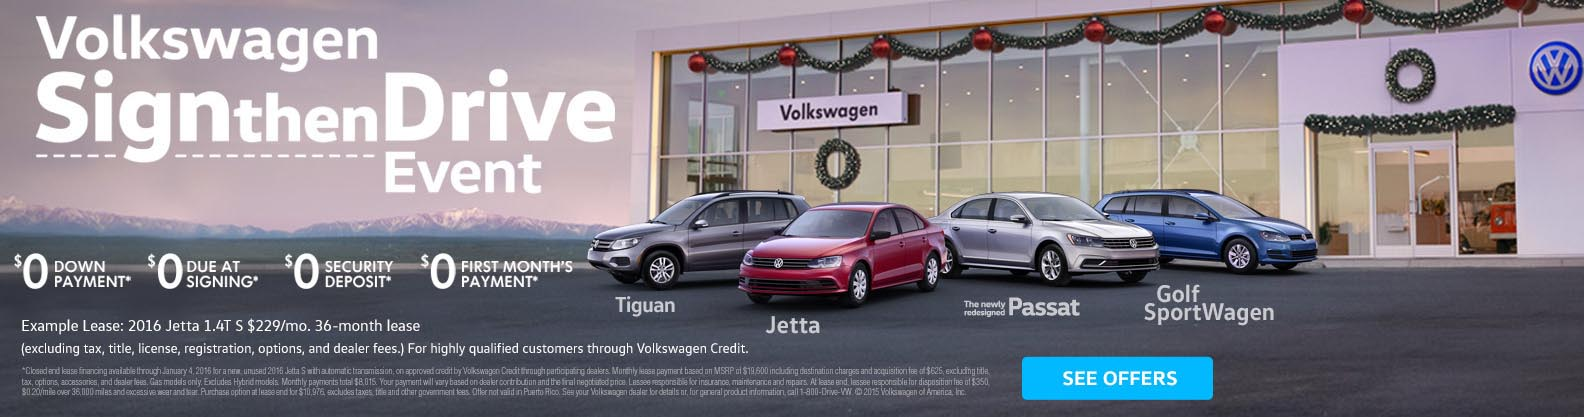 volkswagen marino mercedes l benz chicago and ram dodge chrysler essendon new fields dealer vic used il jeep